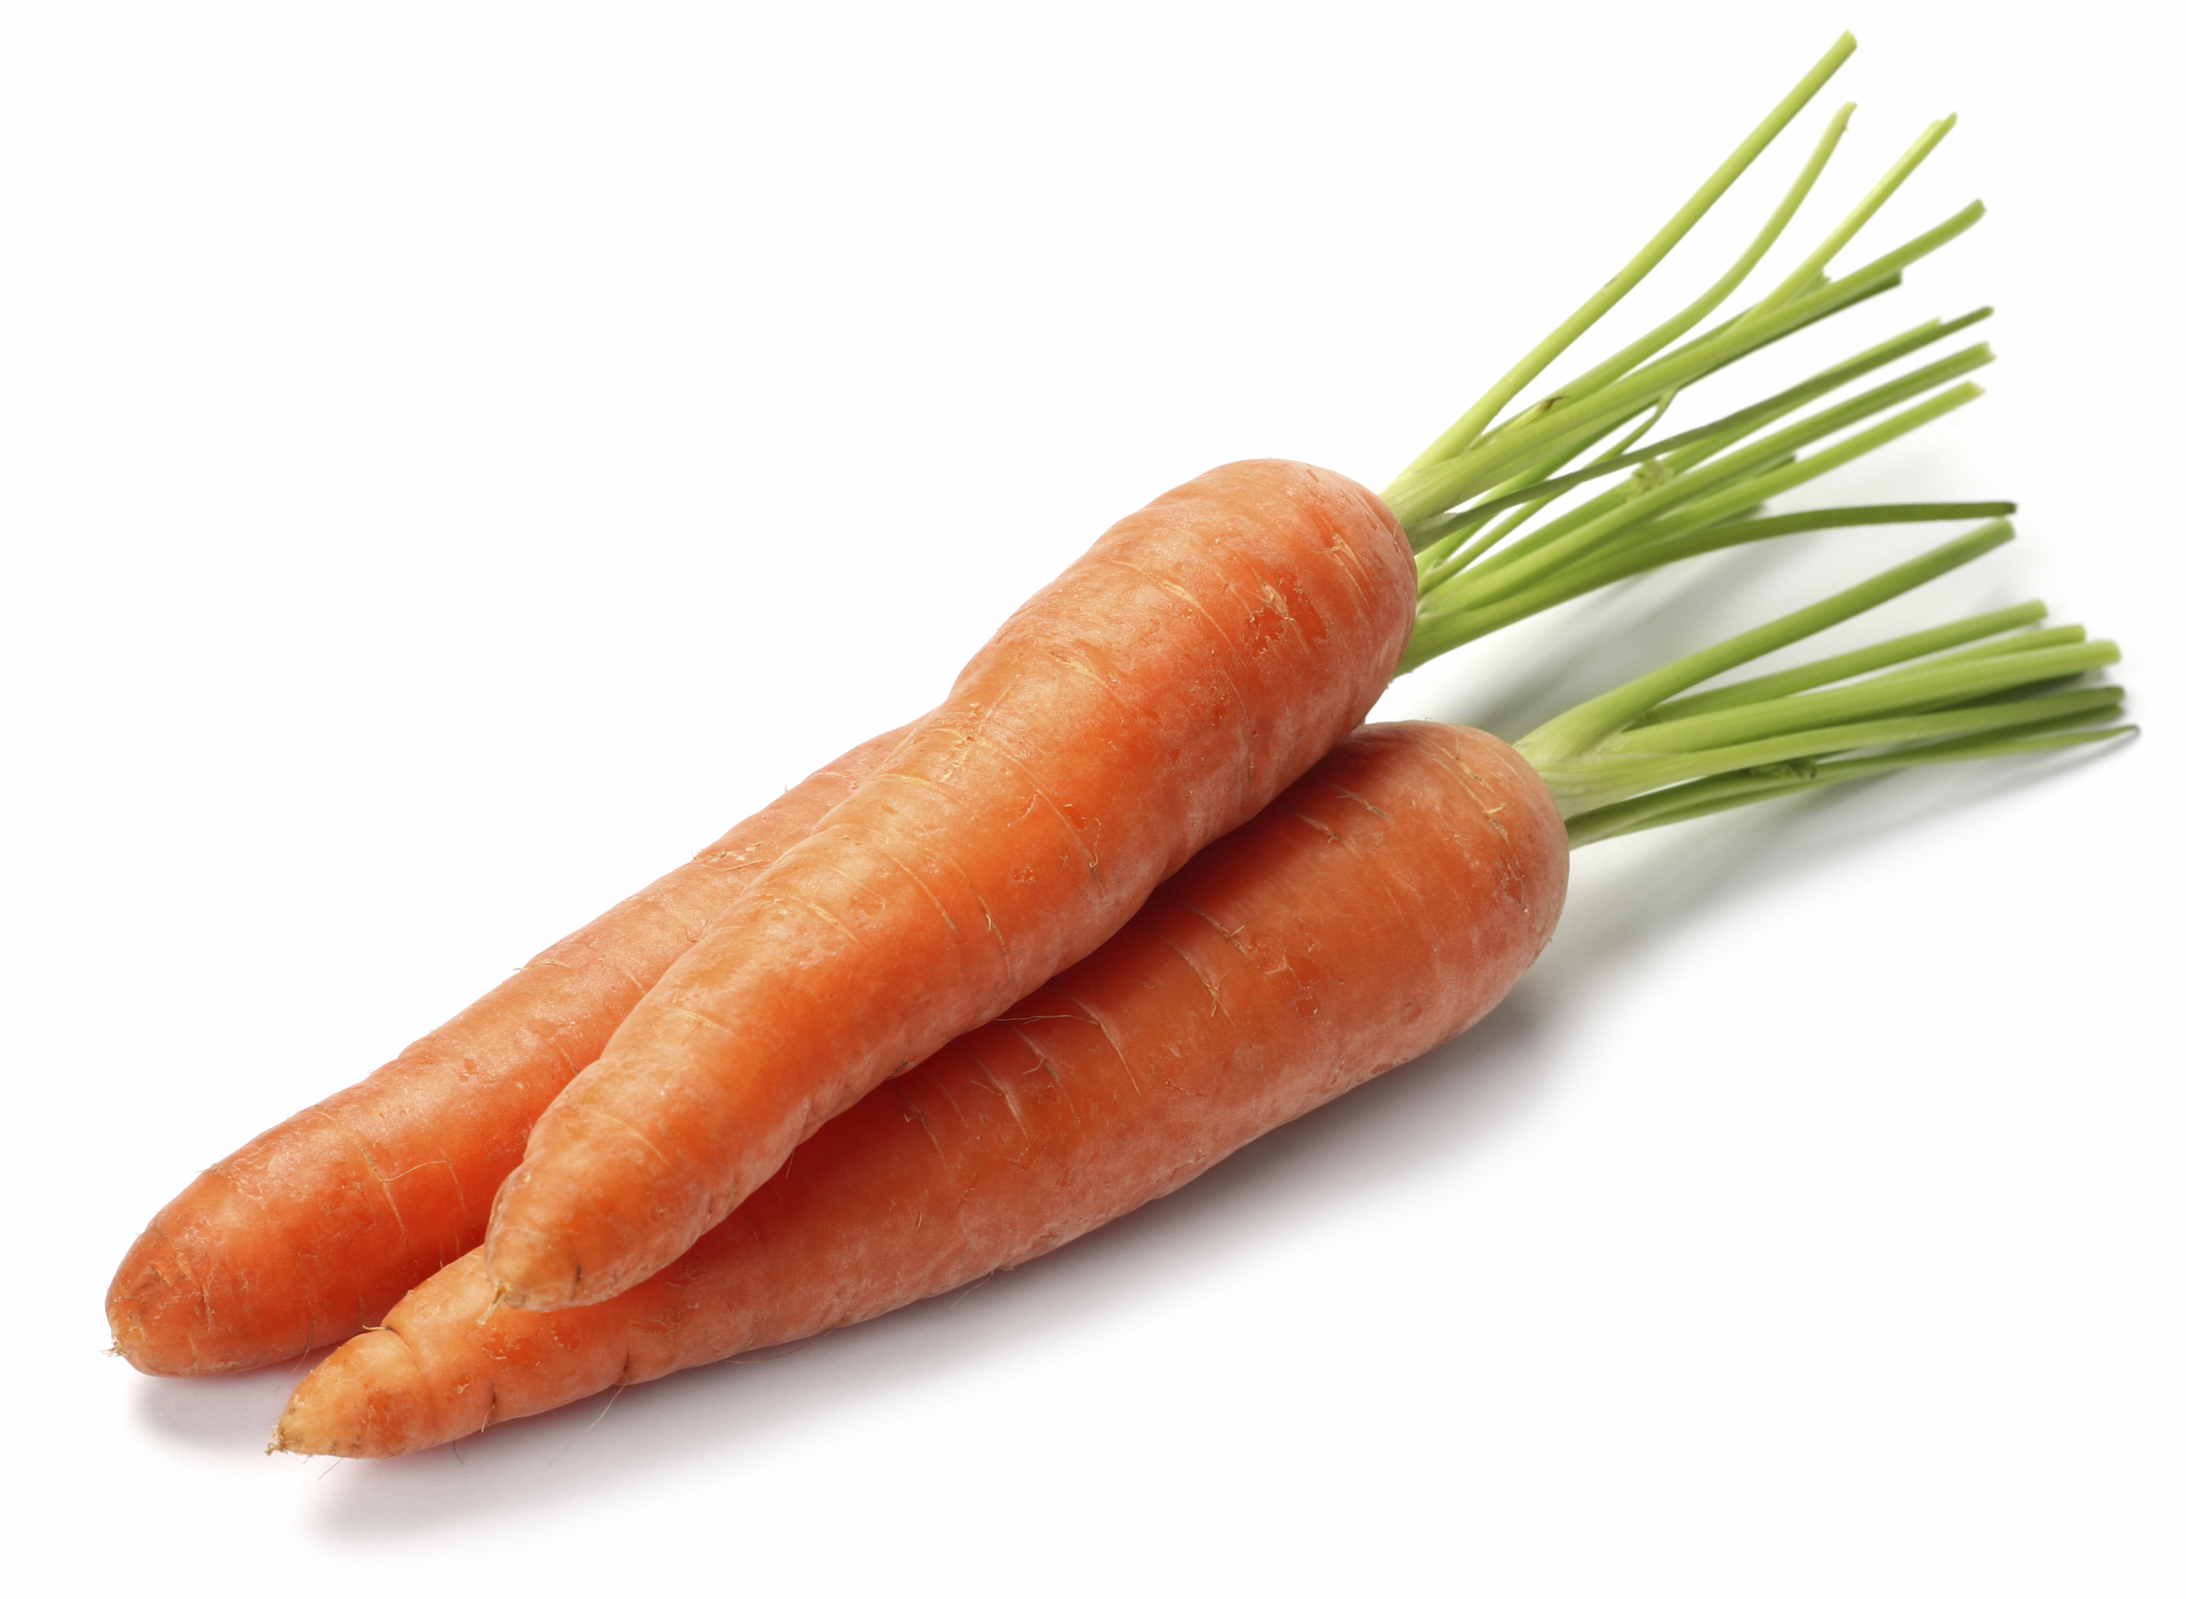 Carotenoids Market Value, Trends, Situation, Sales Area, Competitors, Industry Demand, Scope 2023